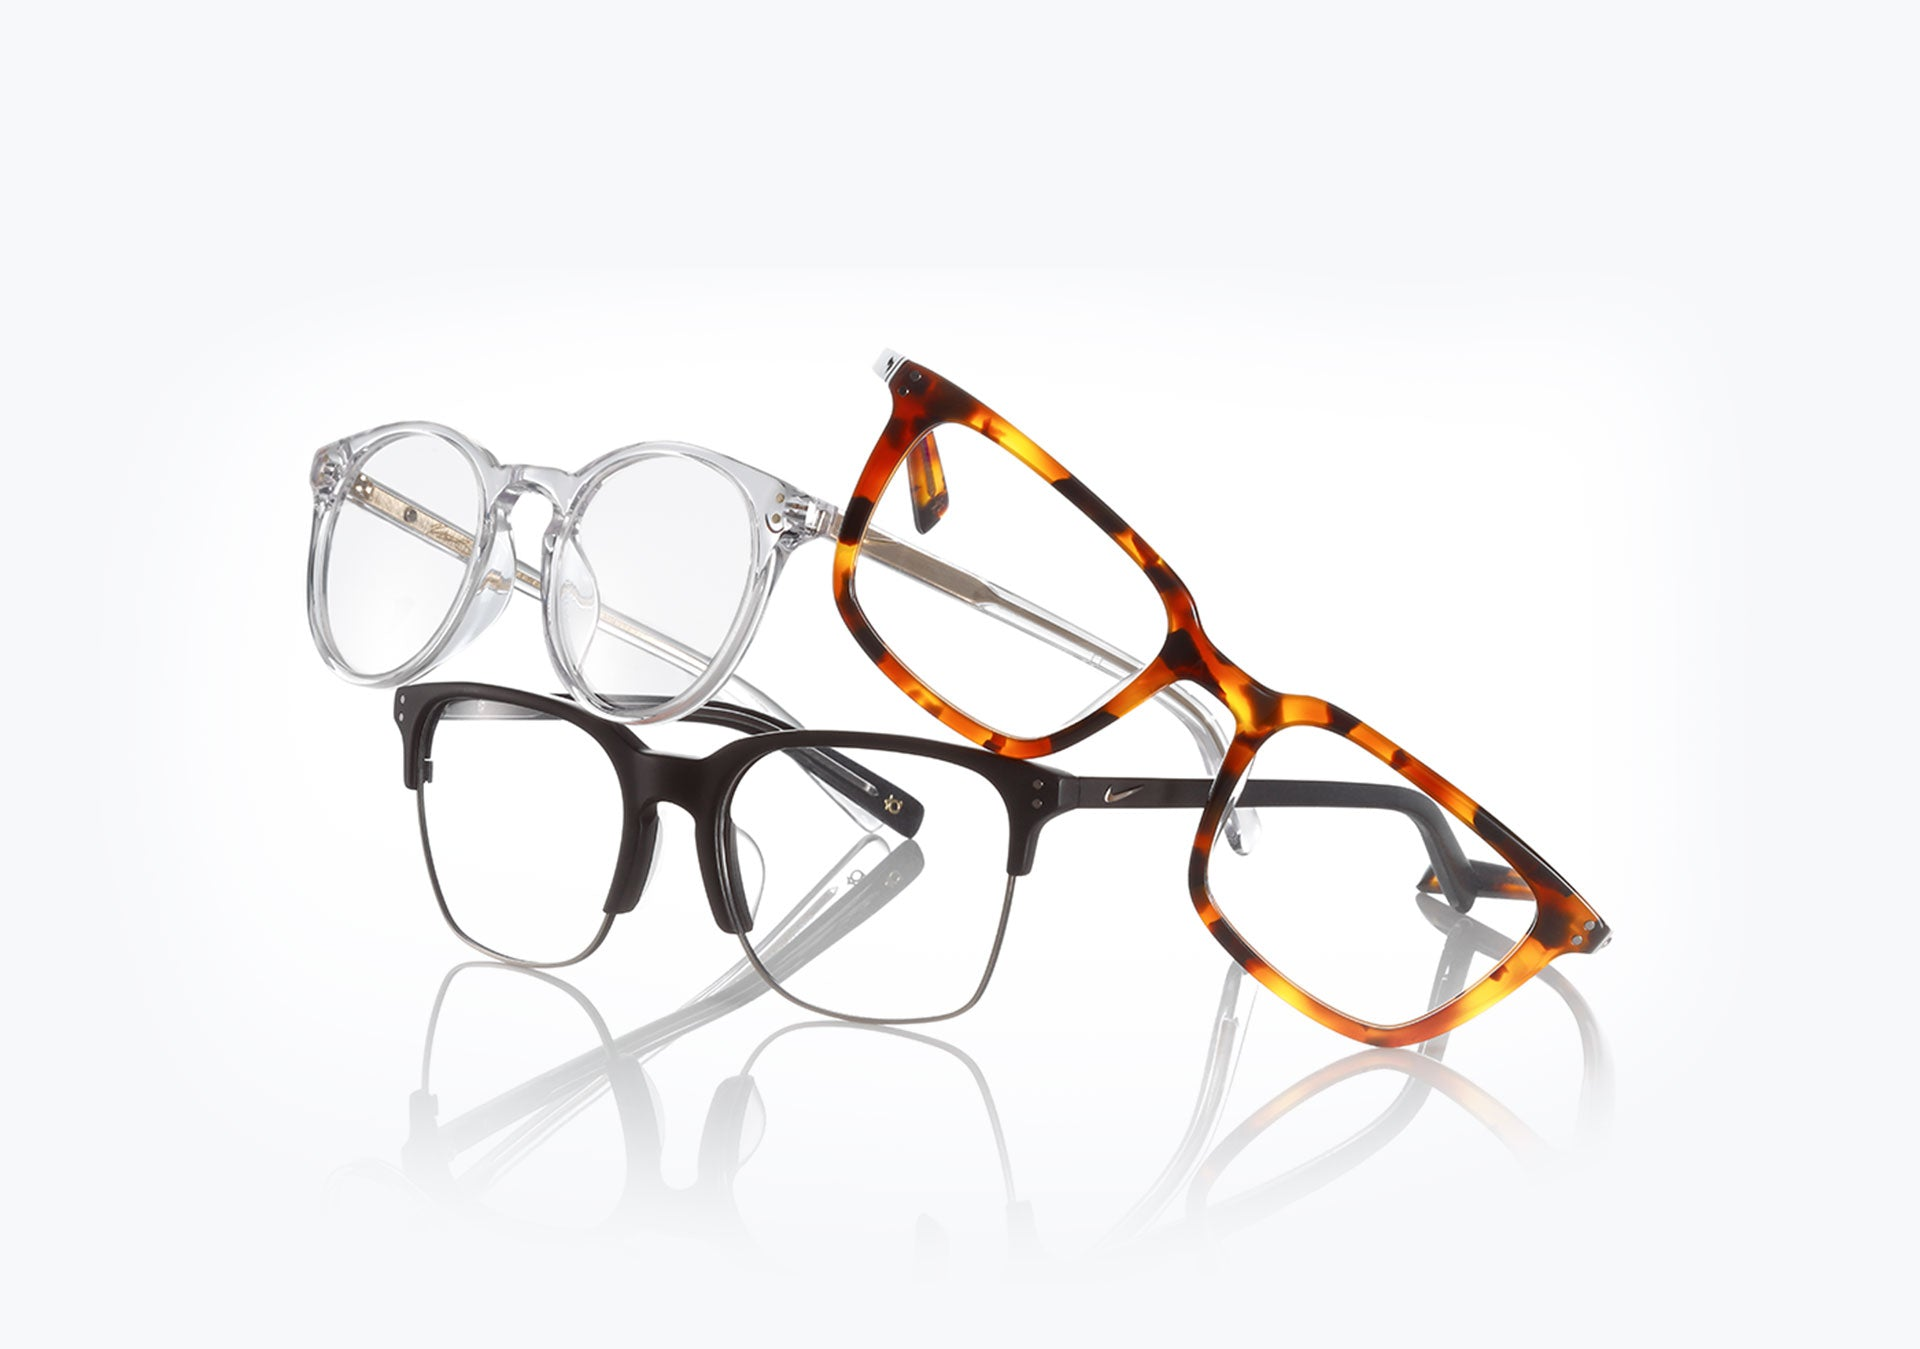 2587d1cf2648 Shop the KD collection and Nike glasses here.